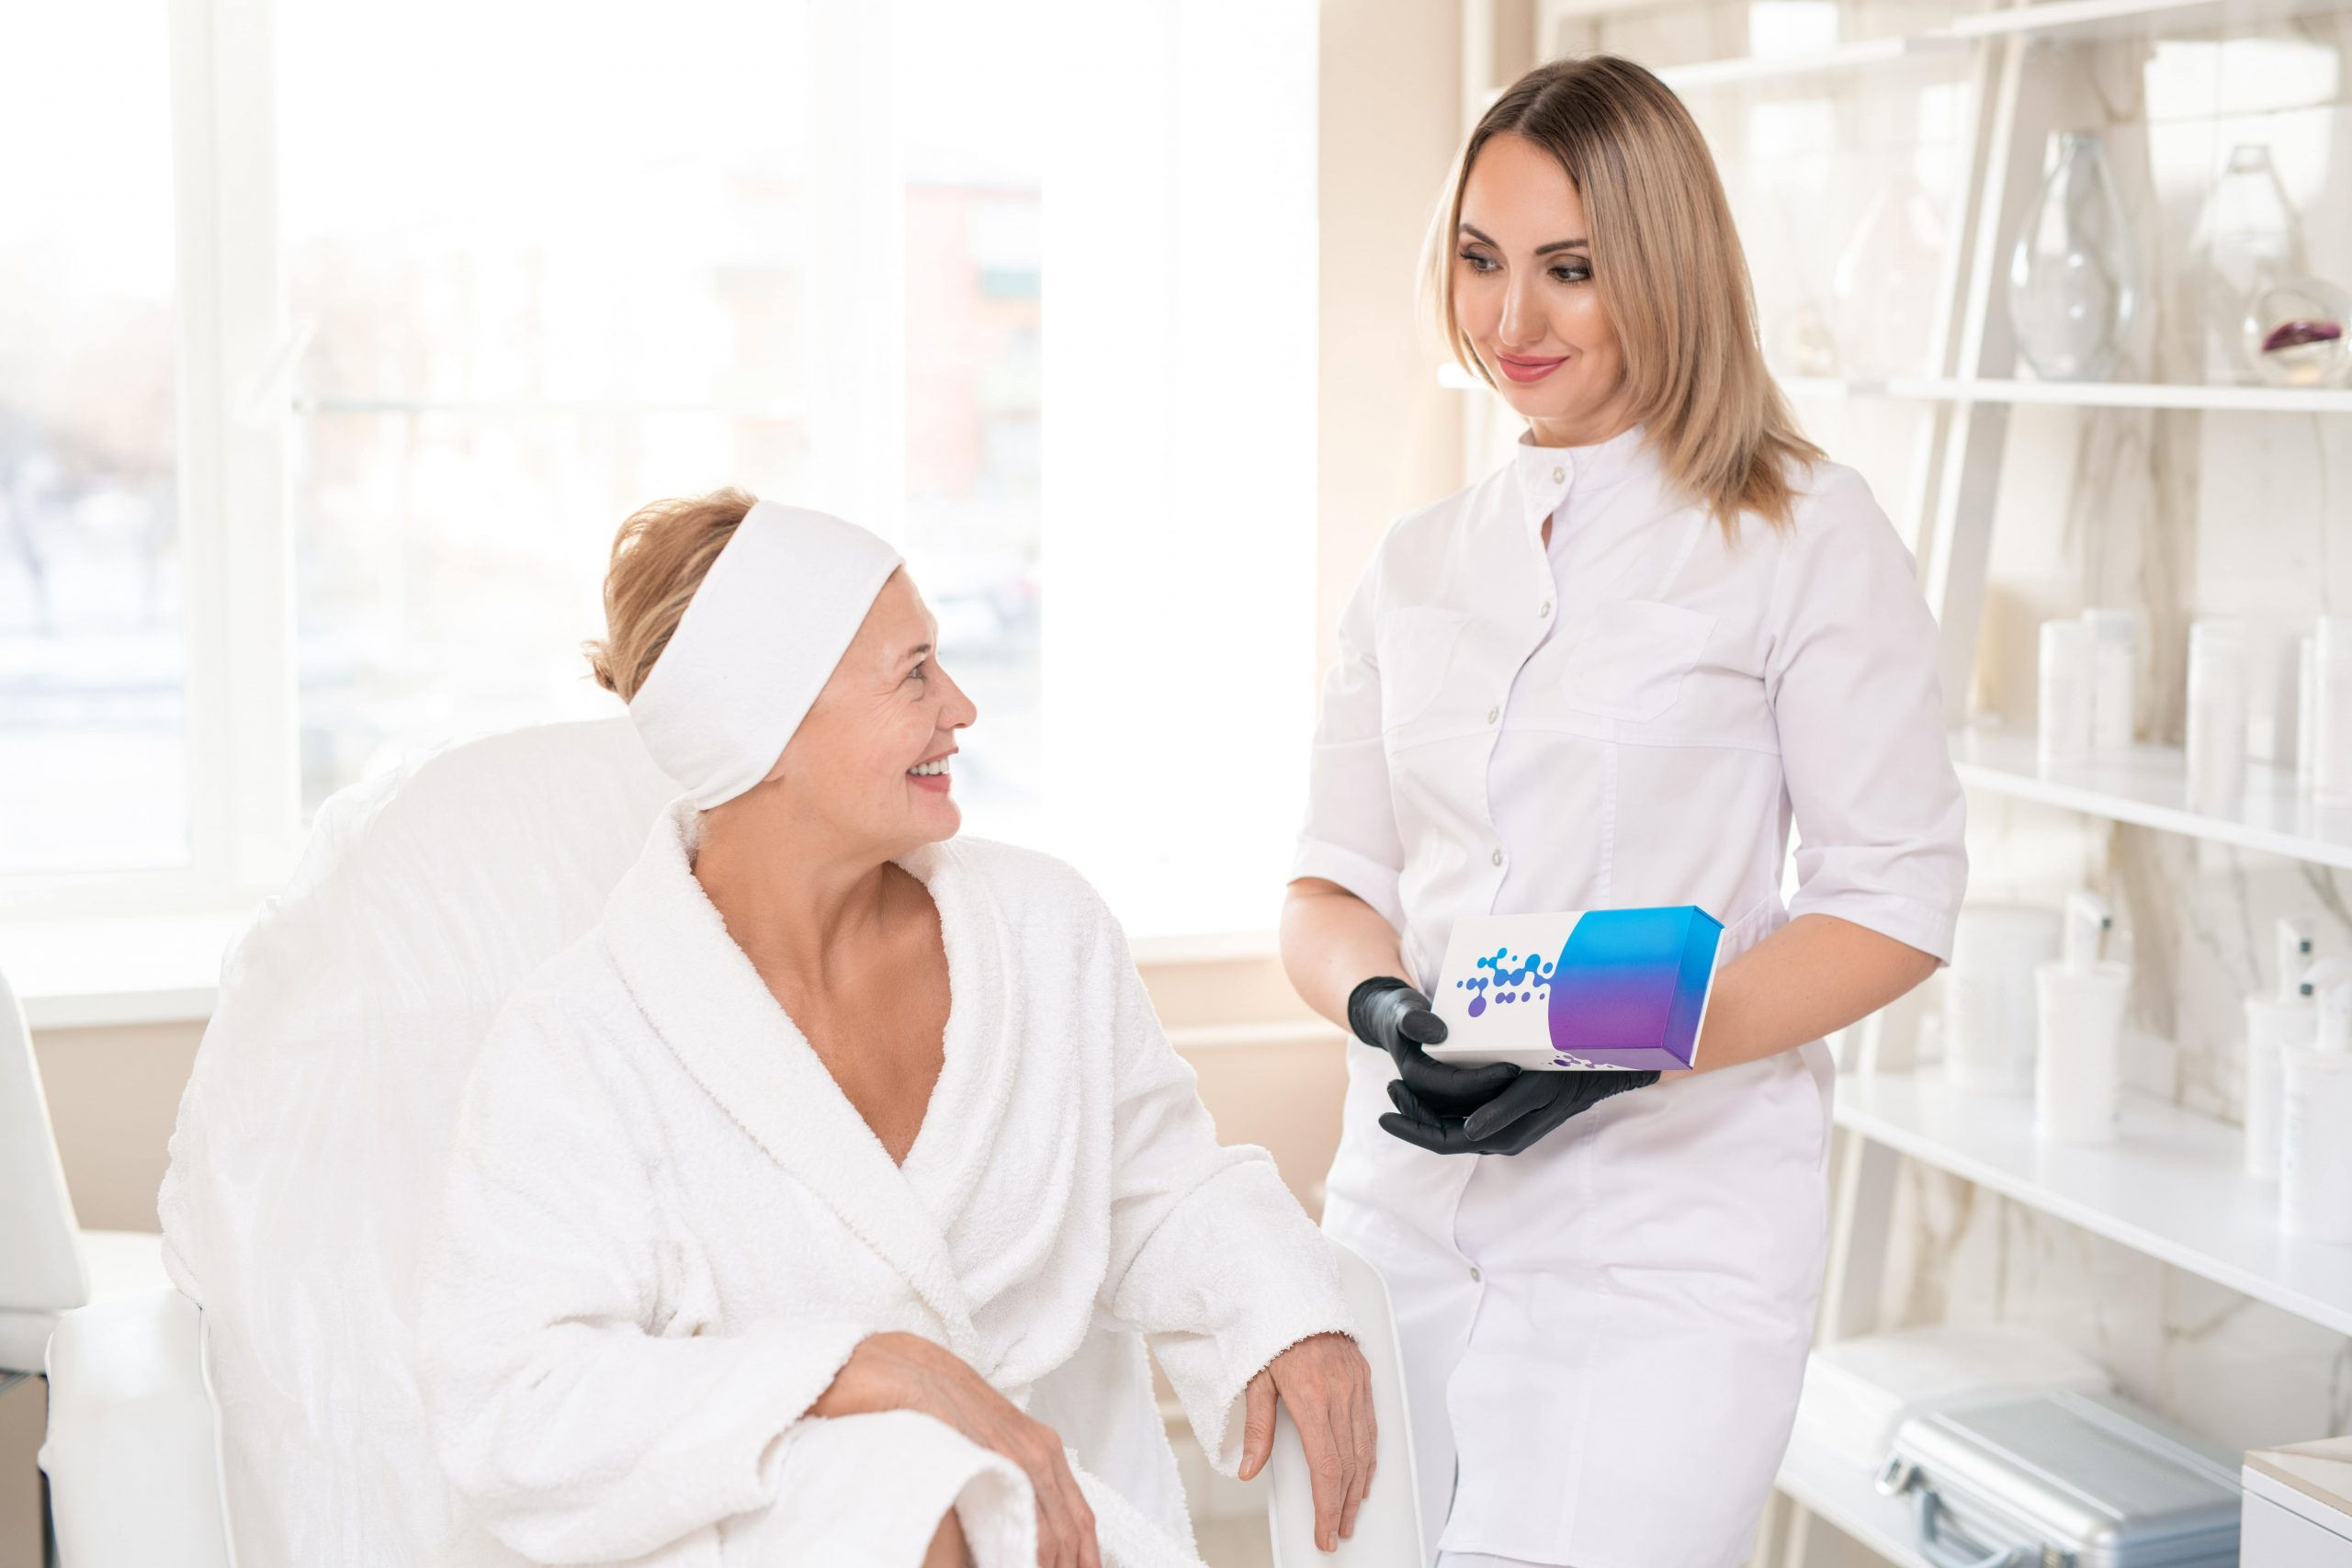 Young cosmetologist in white coat talking to mature client and presenting new filler to her at skin treatment procedure